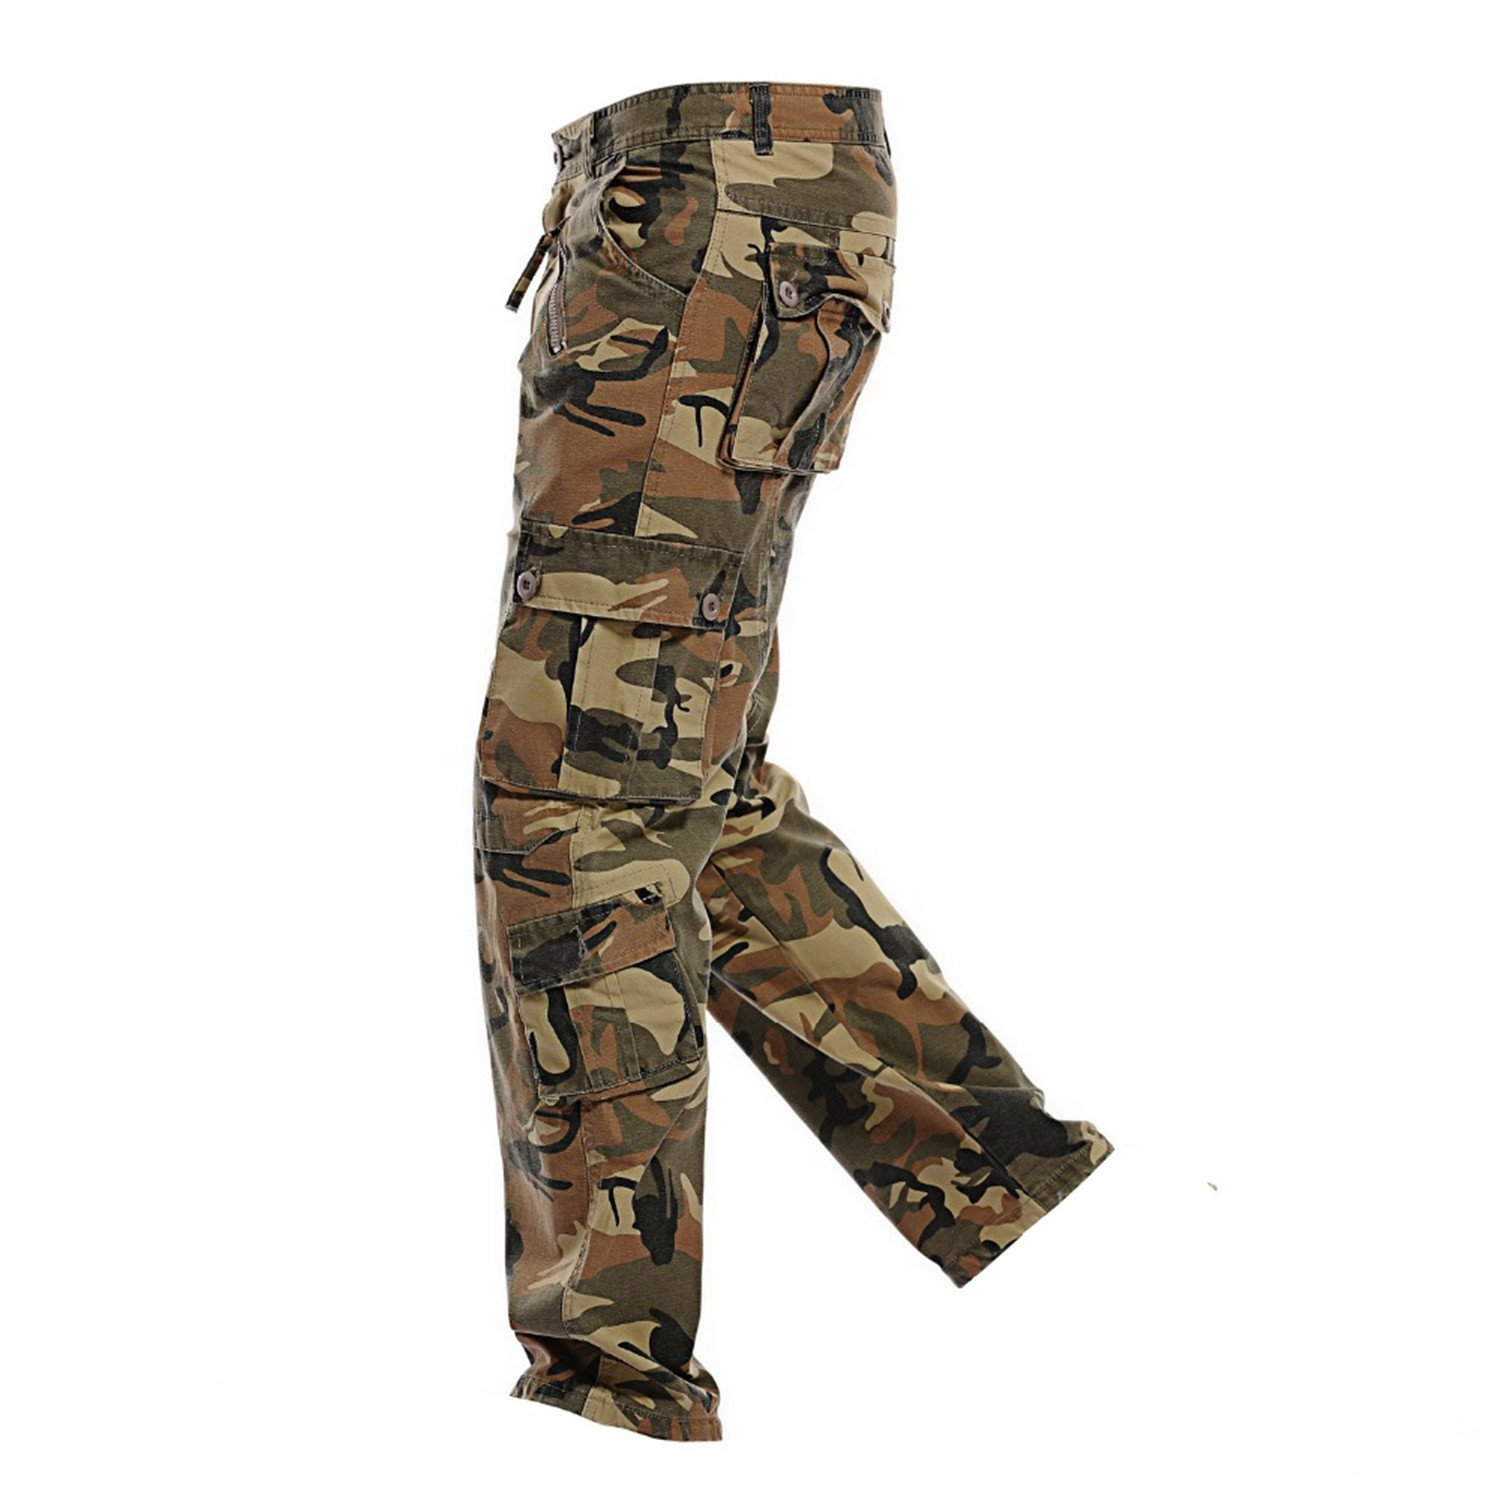 5fdf40532af1 ... Grass Green Ivan Johns Pants Multi-Pocket Military Military Military  Army Camouflage Pants Men Casual ...